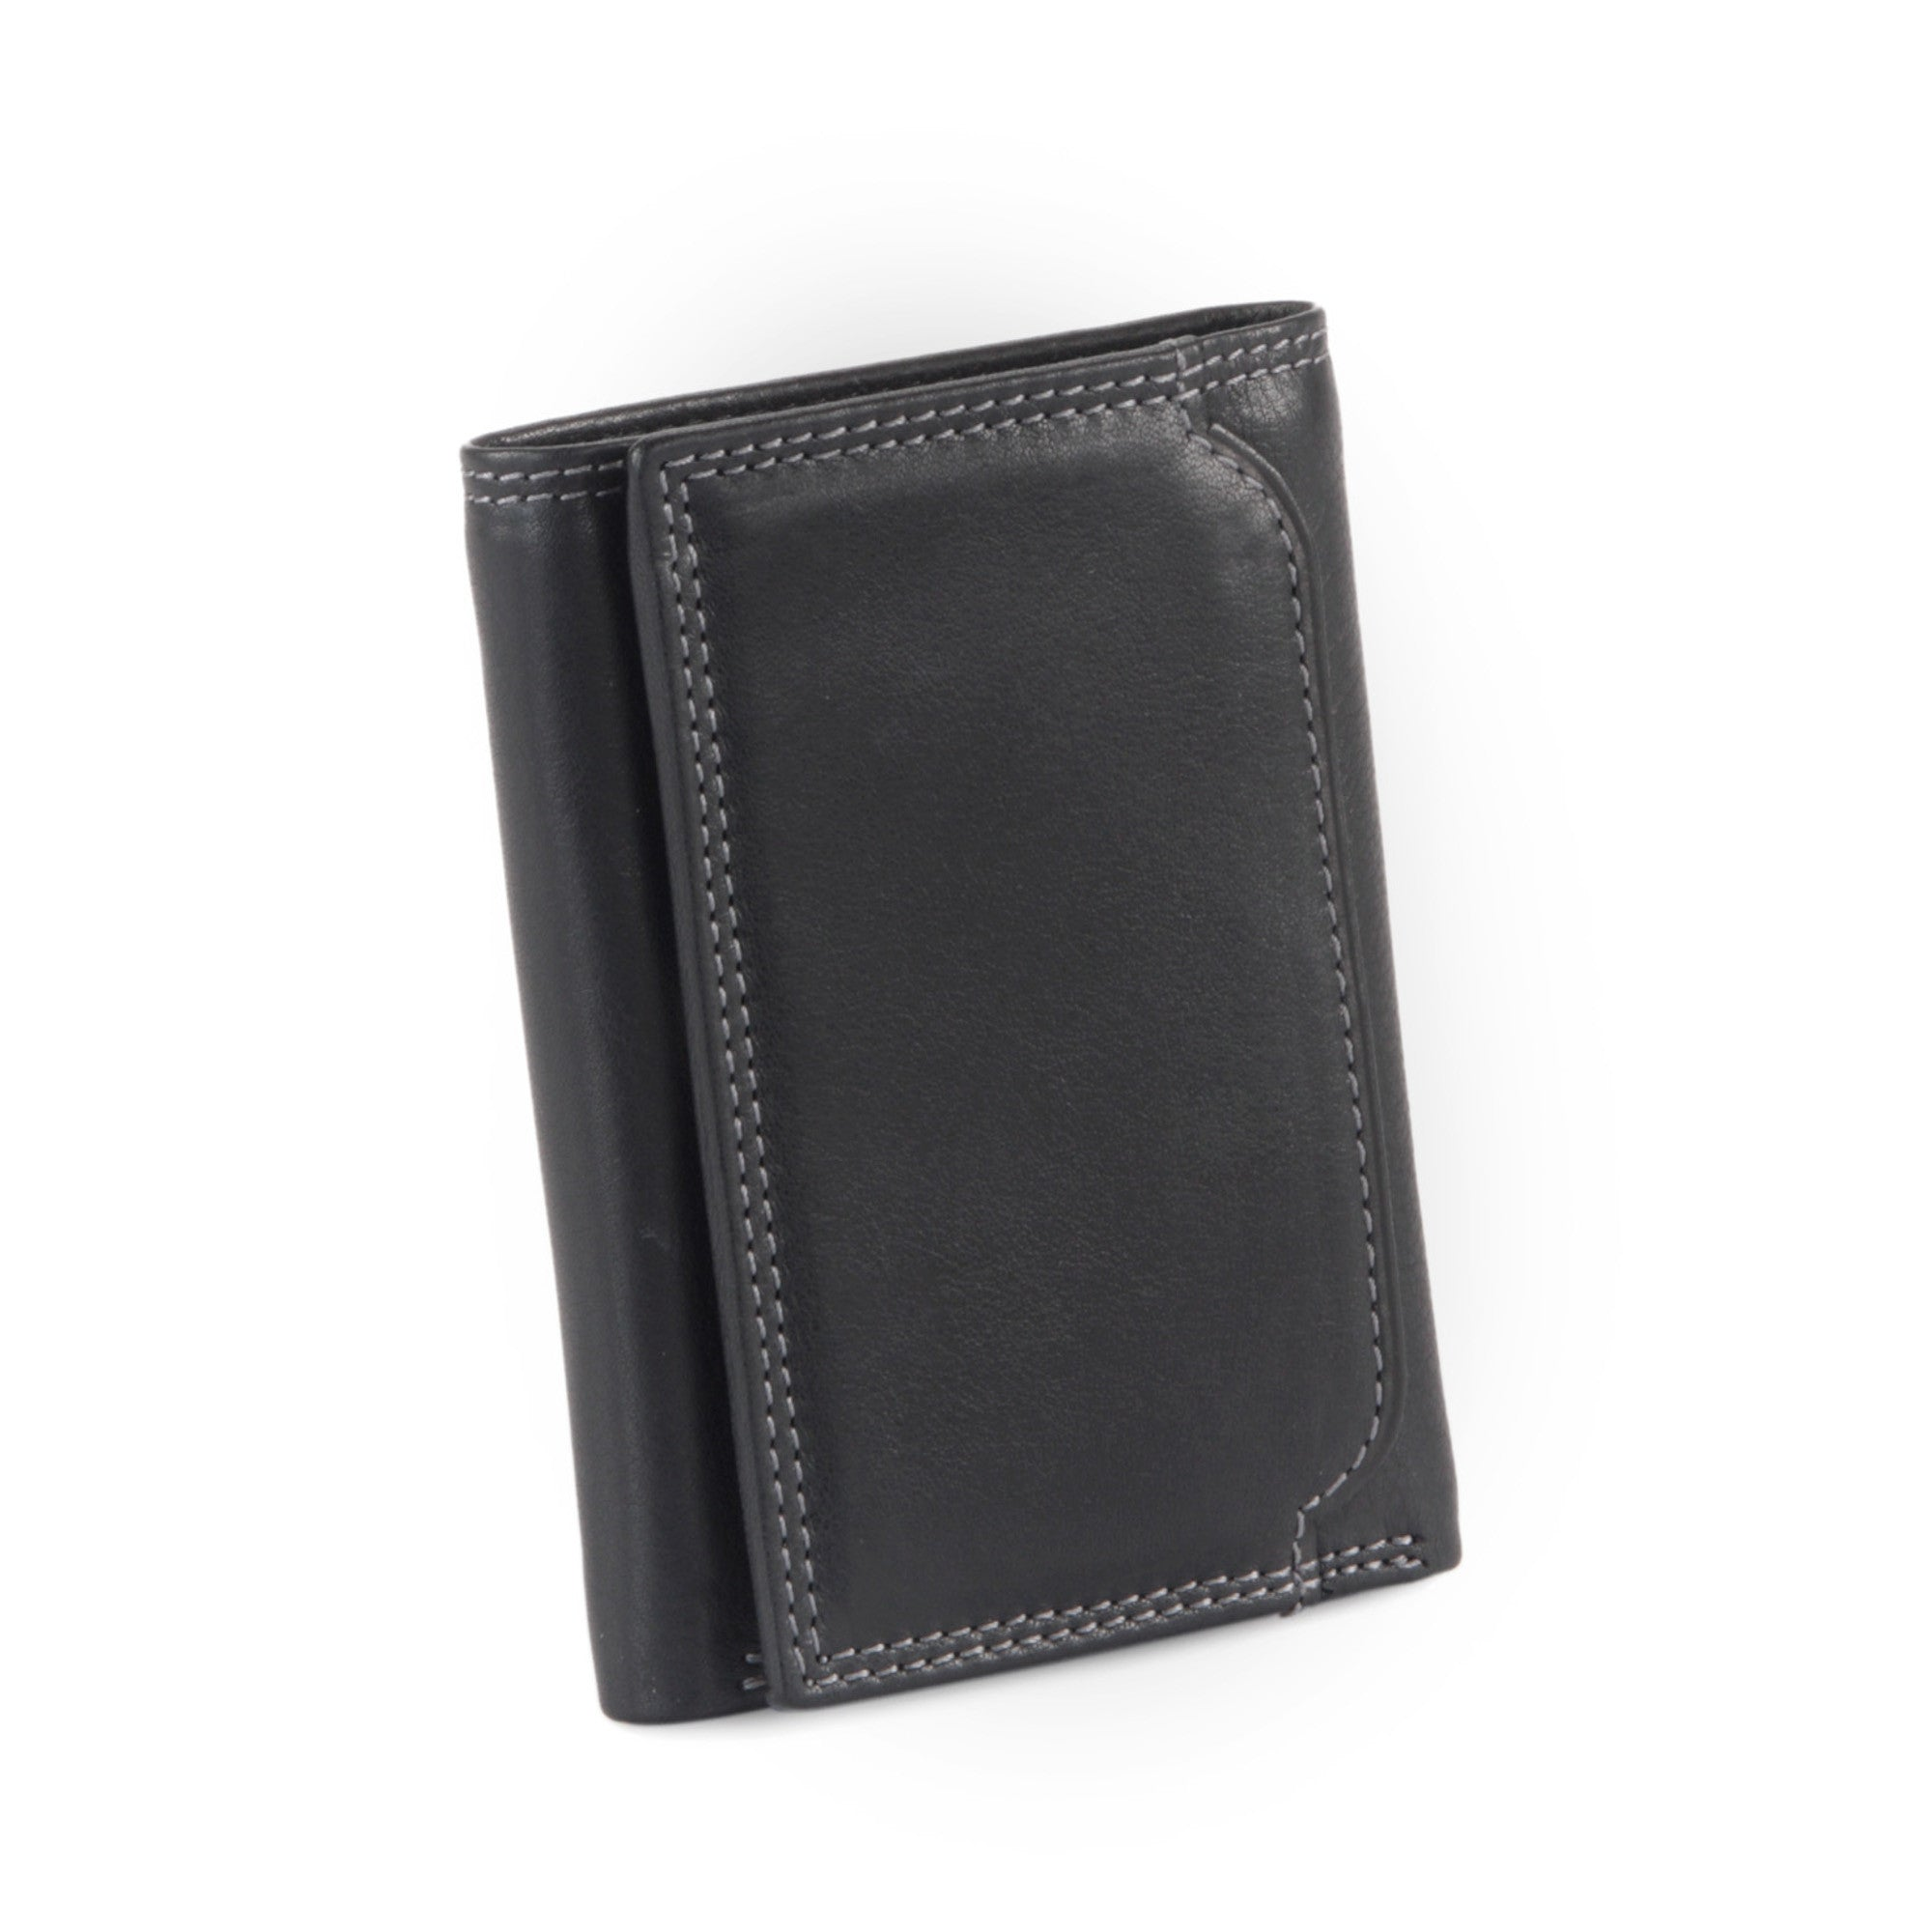 Style n Craft 300790-BL Trifold Wallet in Leather - black color - closed front view